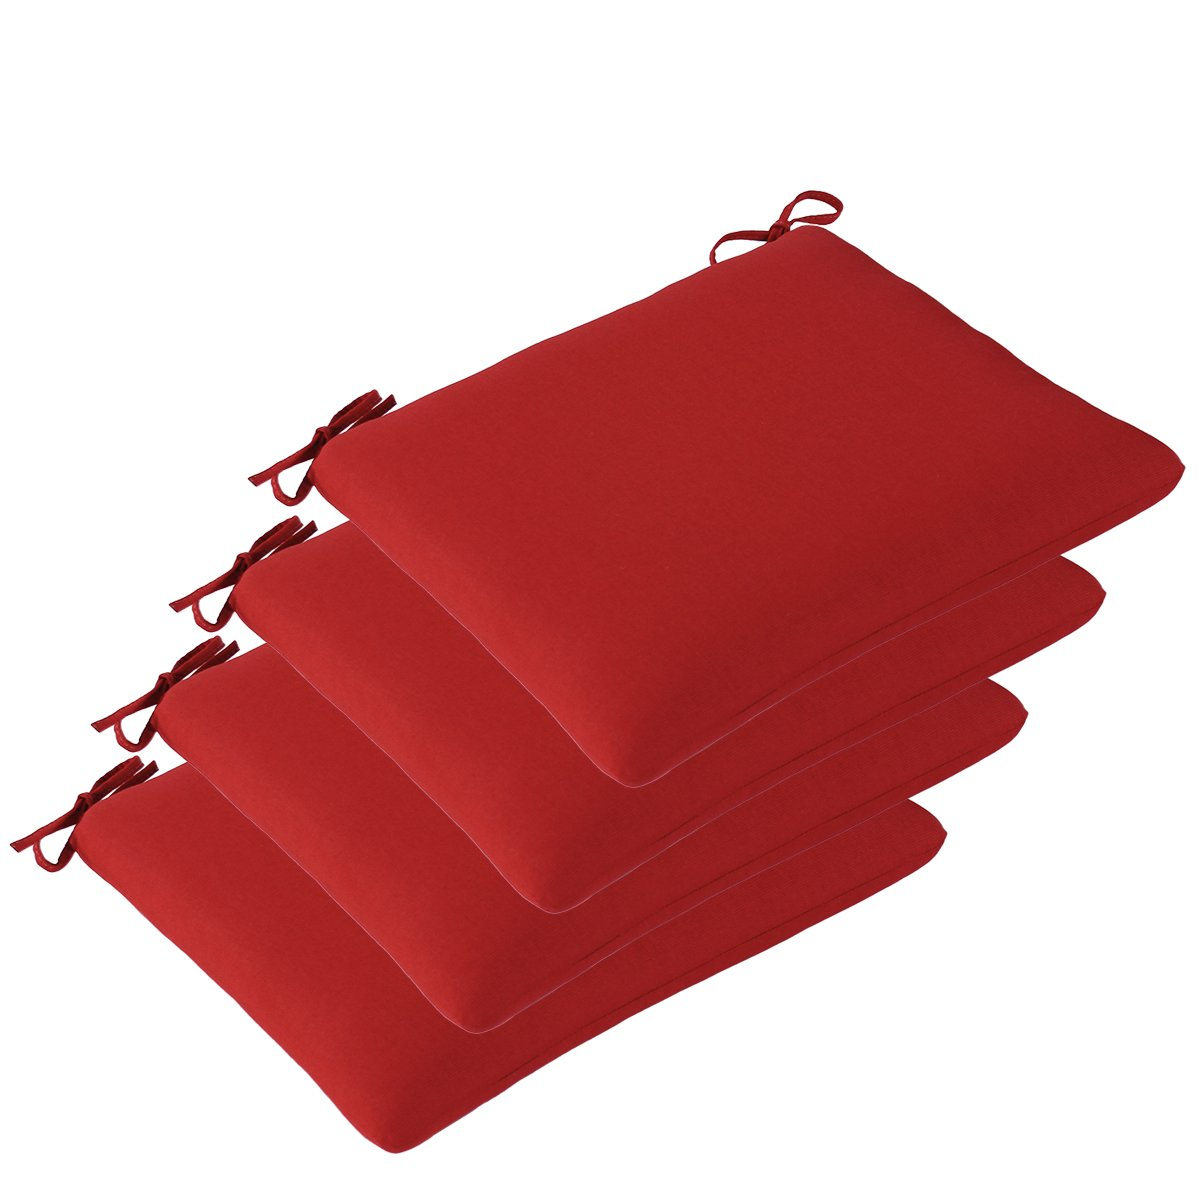 Set of 4 Outdoor Seat Cushions 20'' x 19'' x 2'' in Olefin Fabric Ruby by Comfort Classics Inc.